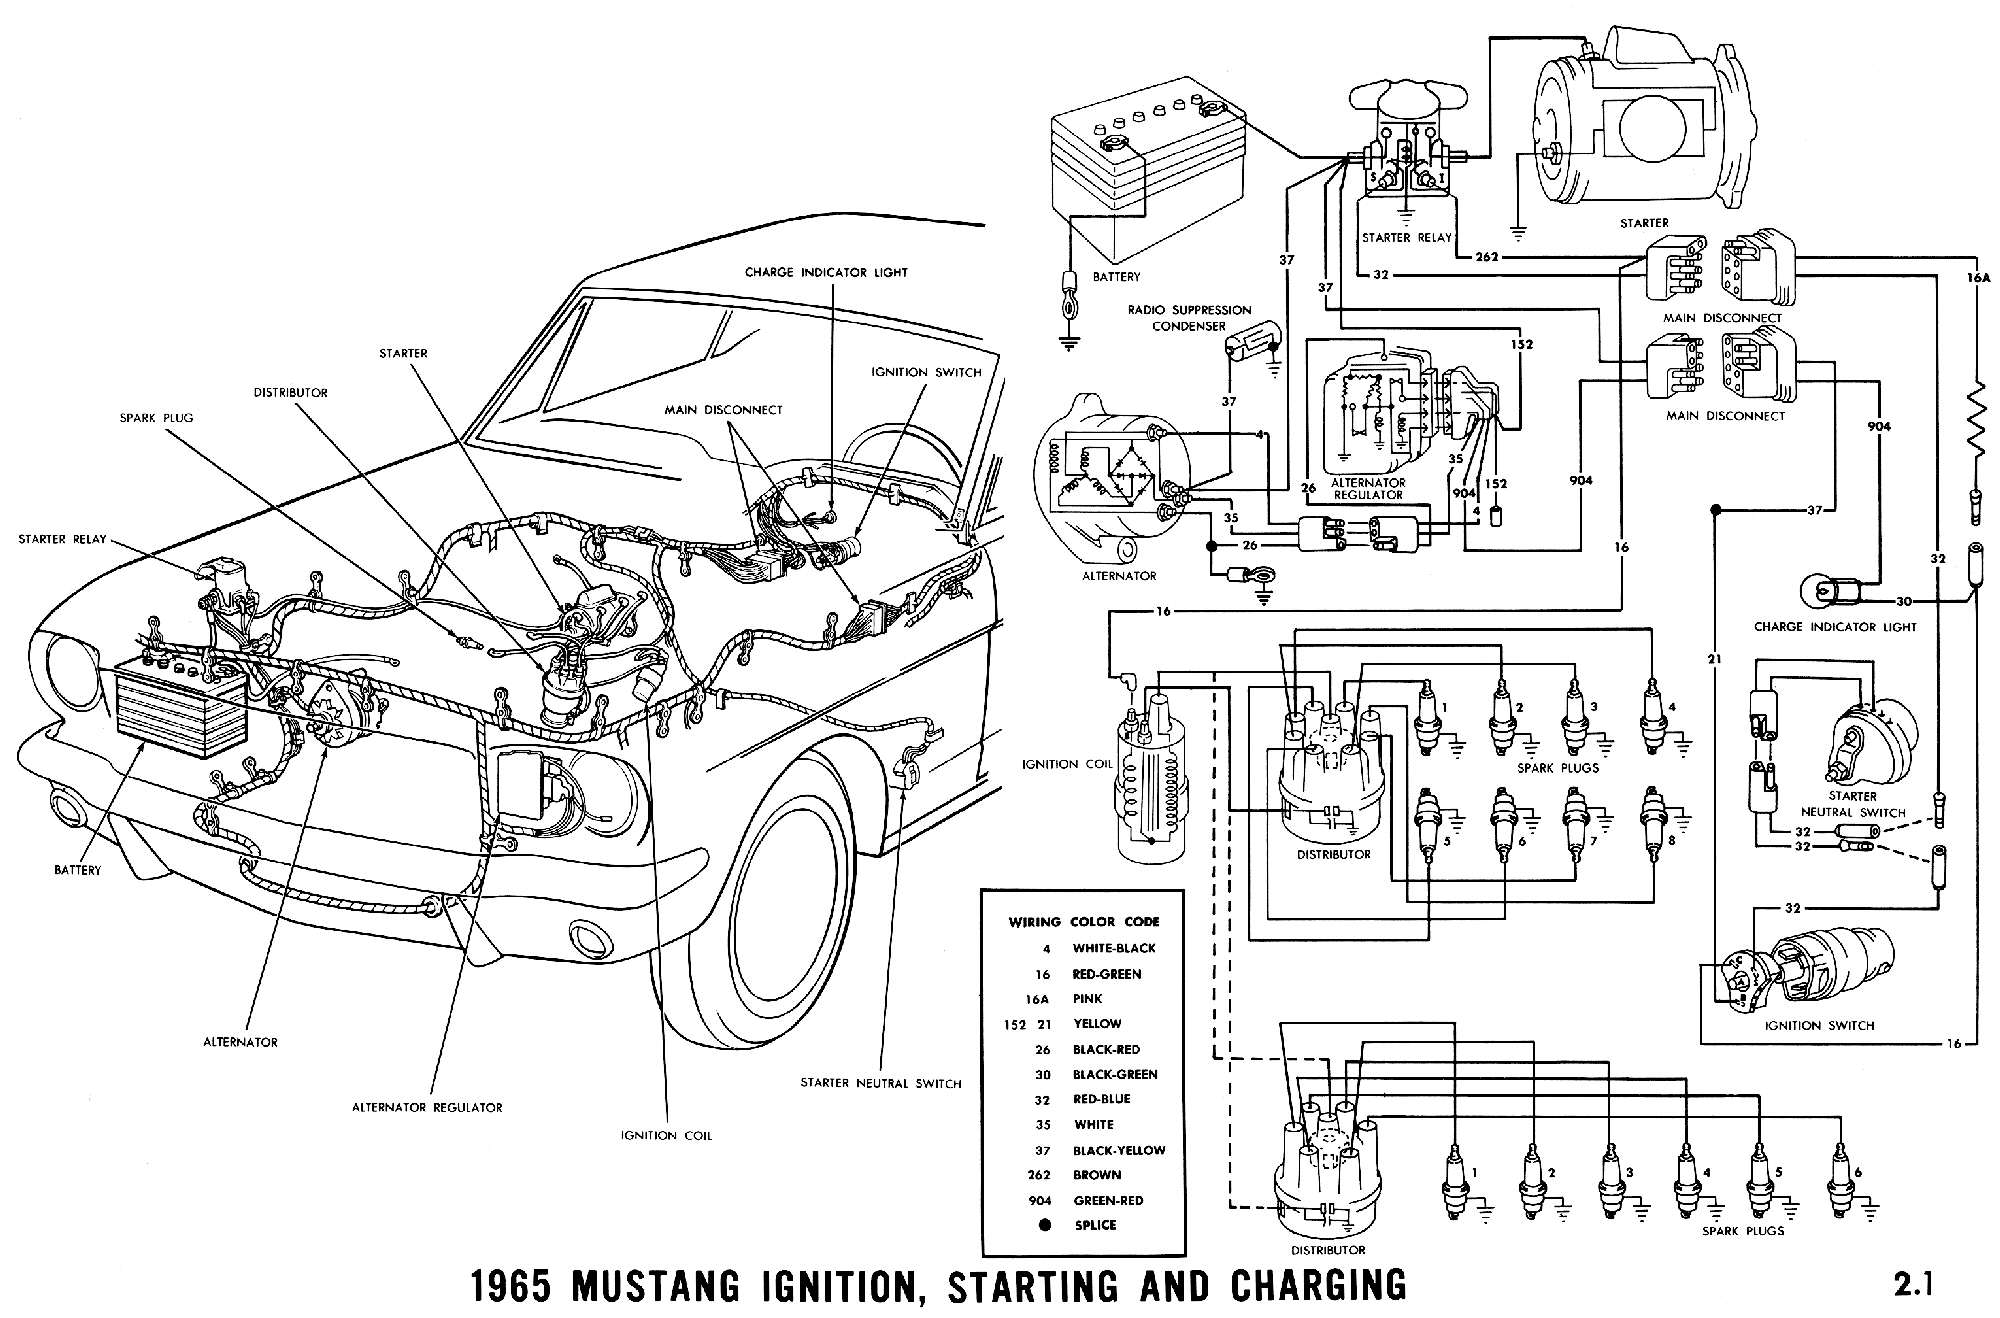 1965c 1965 mustang wiring diagrams average joe restoration 65 mustang fuse box location at eliteediting.co